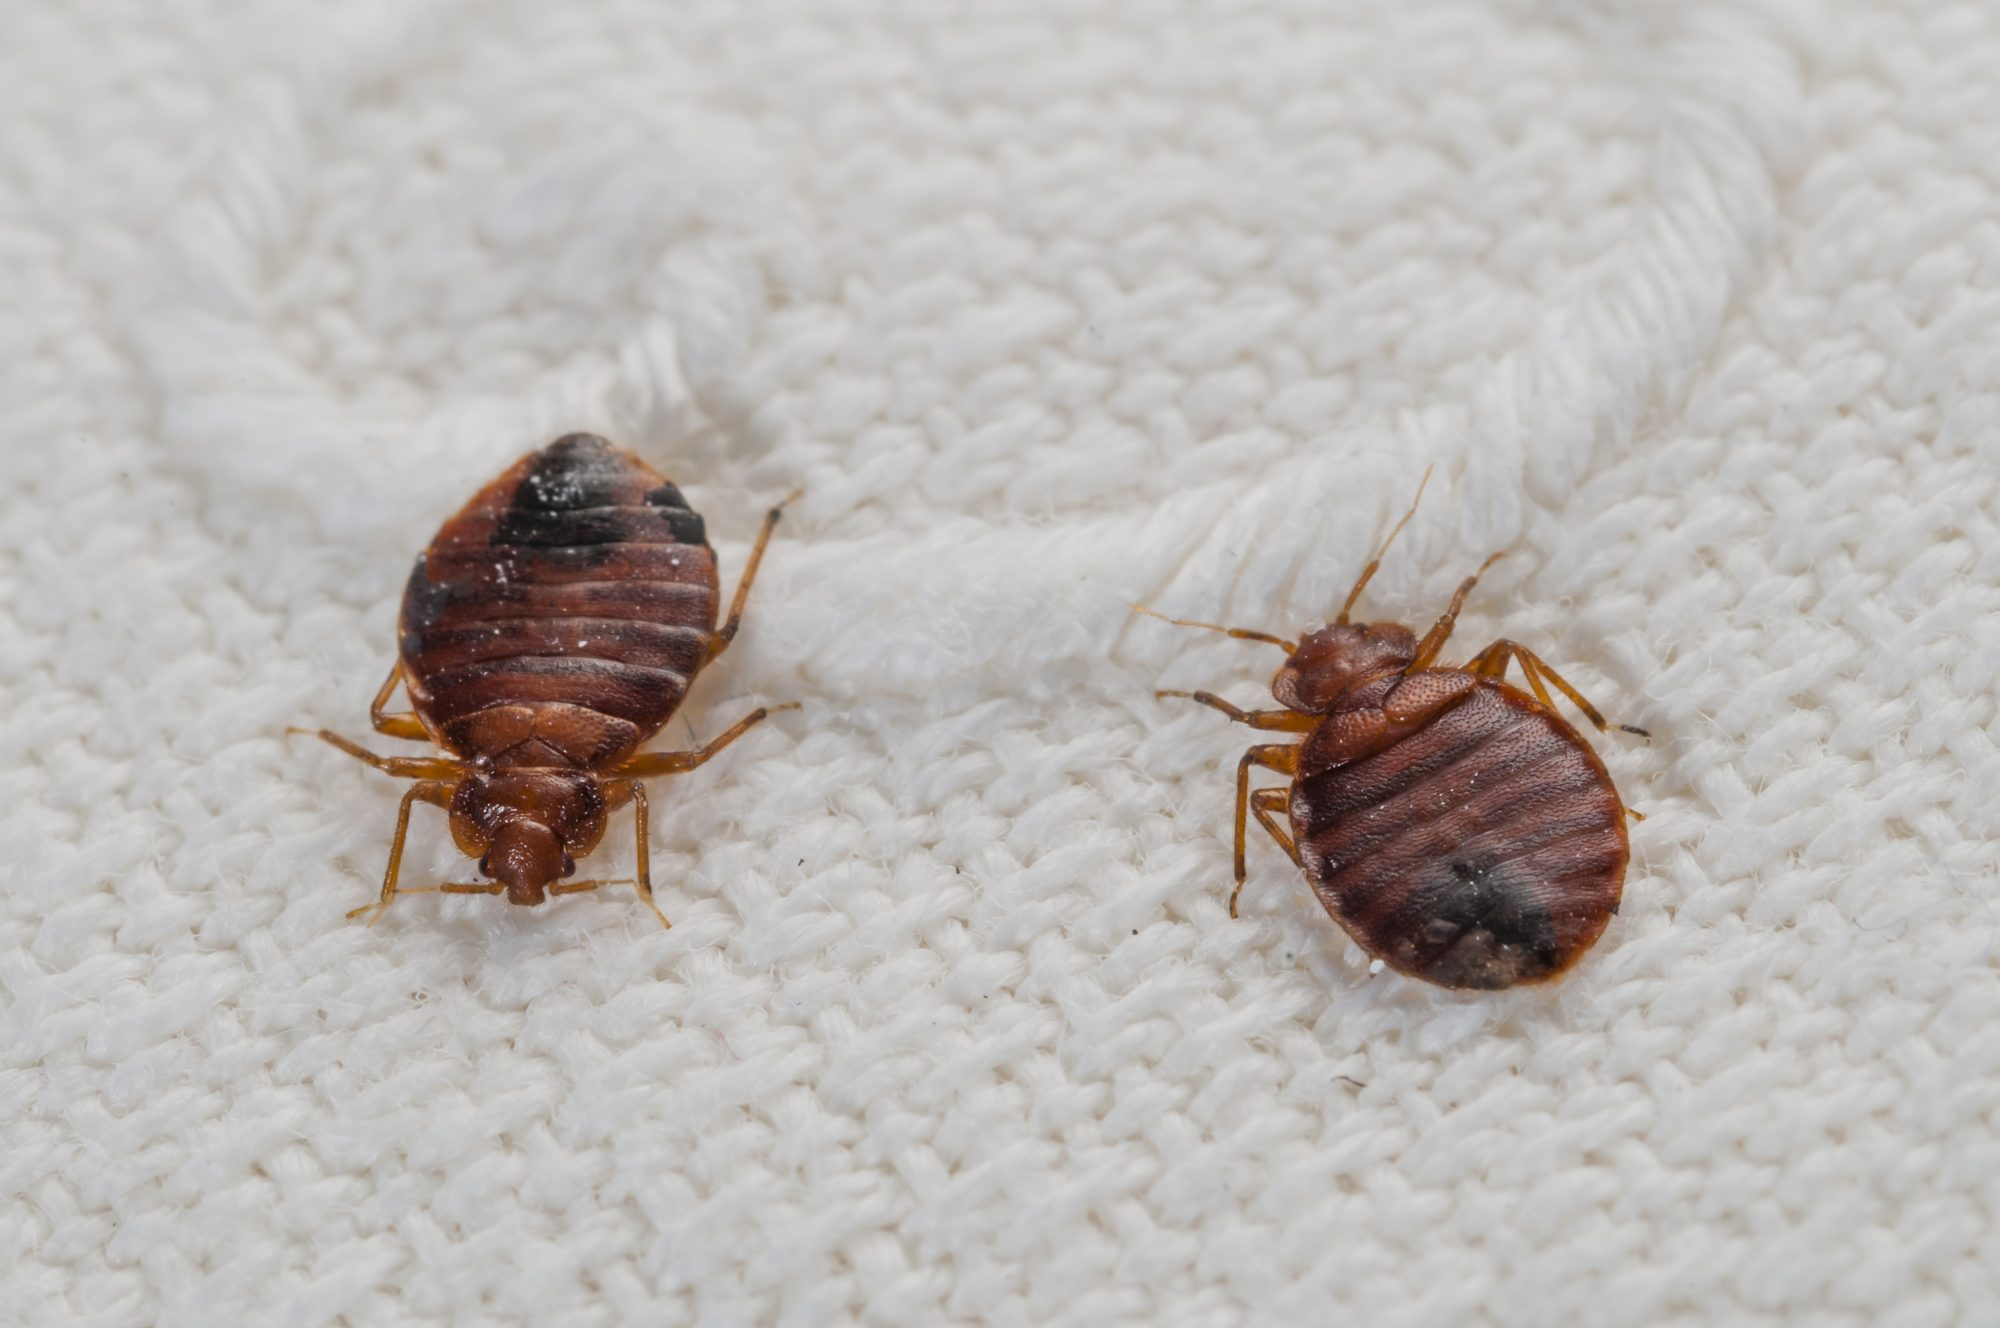 How To Get Rid Of Bed Bugs Health